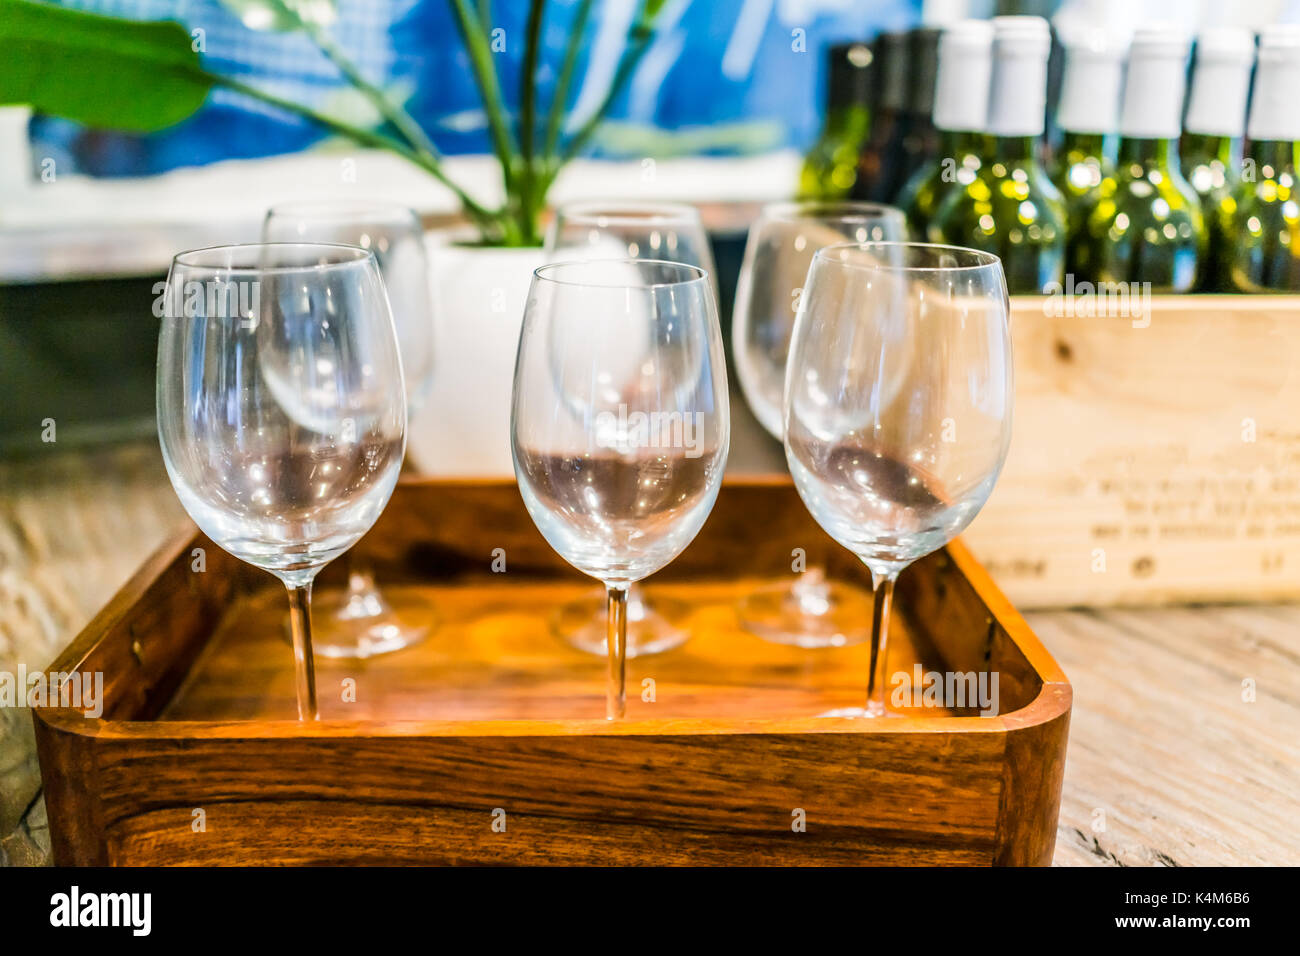 Closeup of empty wine glasses on tray with wooden crate of bottles on table in room - Stock Image